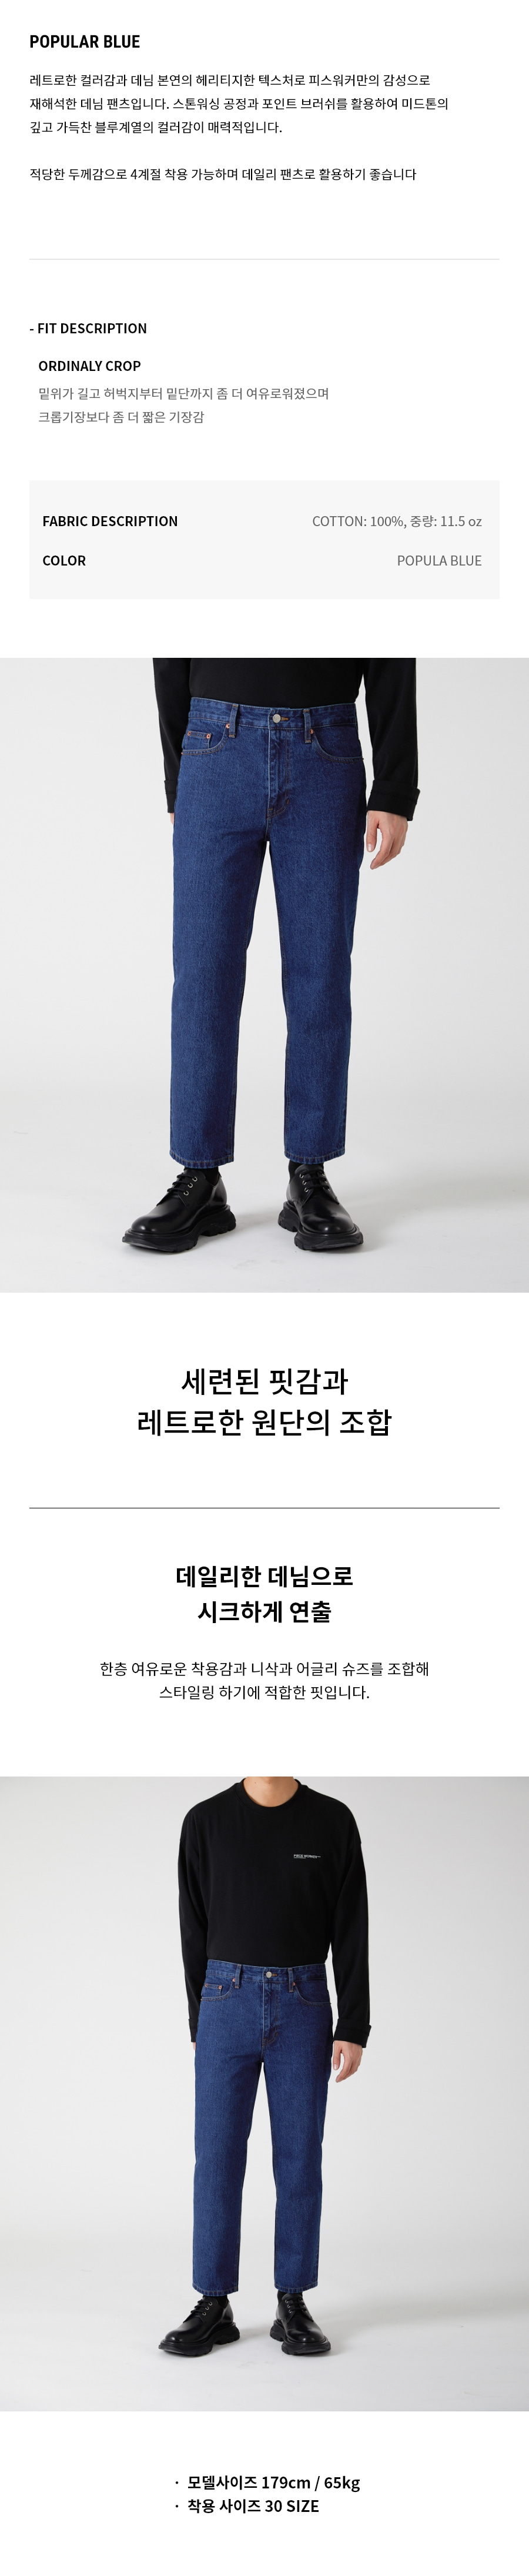 피스워커(PIECE WORKER) Popular Blue / Ordinary Crop